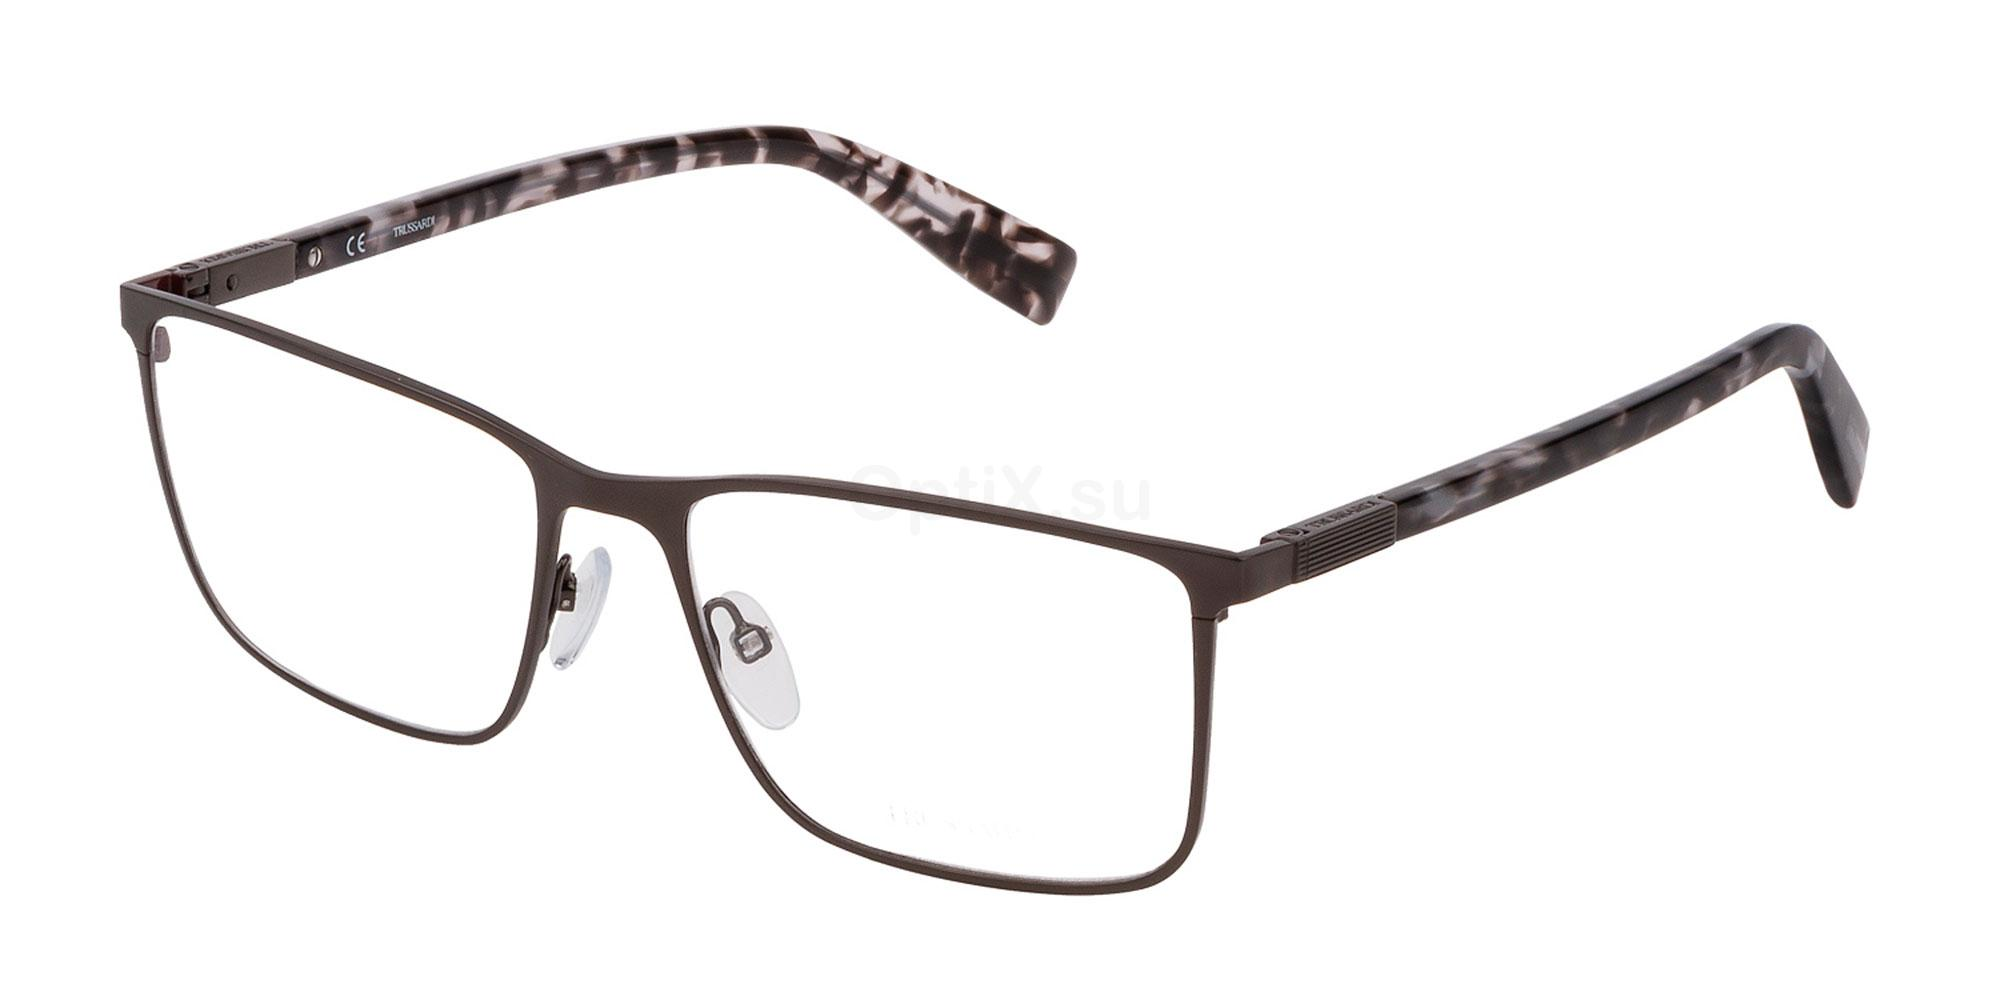 0522 VTR354 Glasses, Trussardi